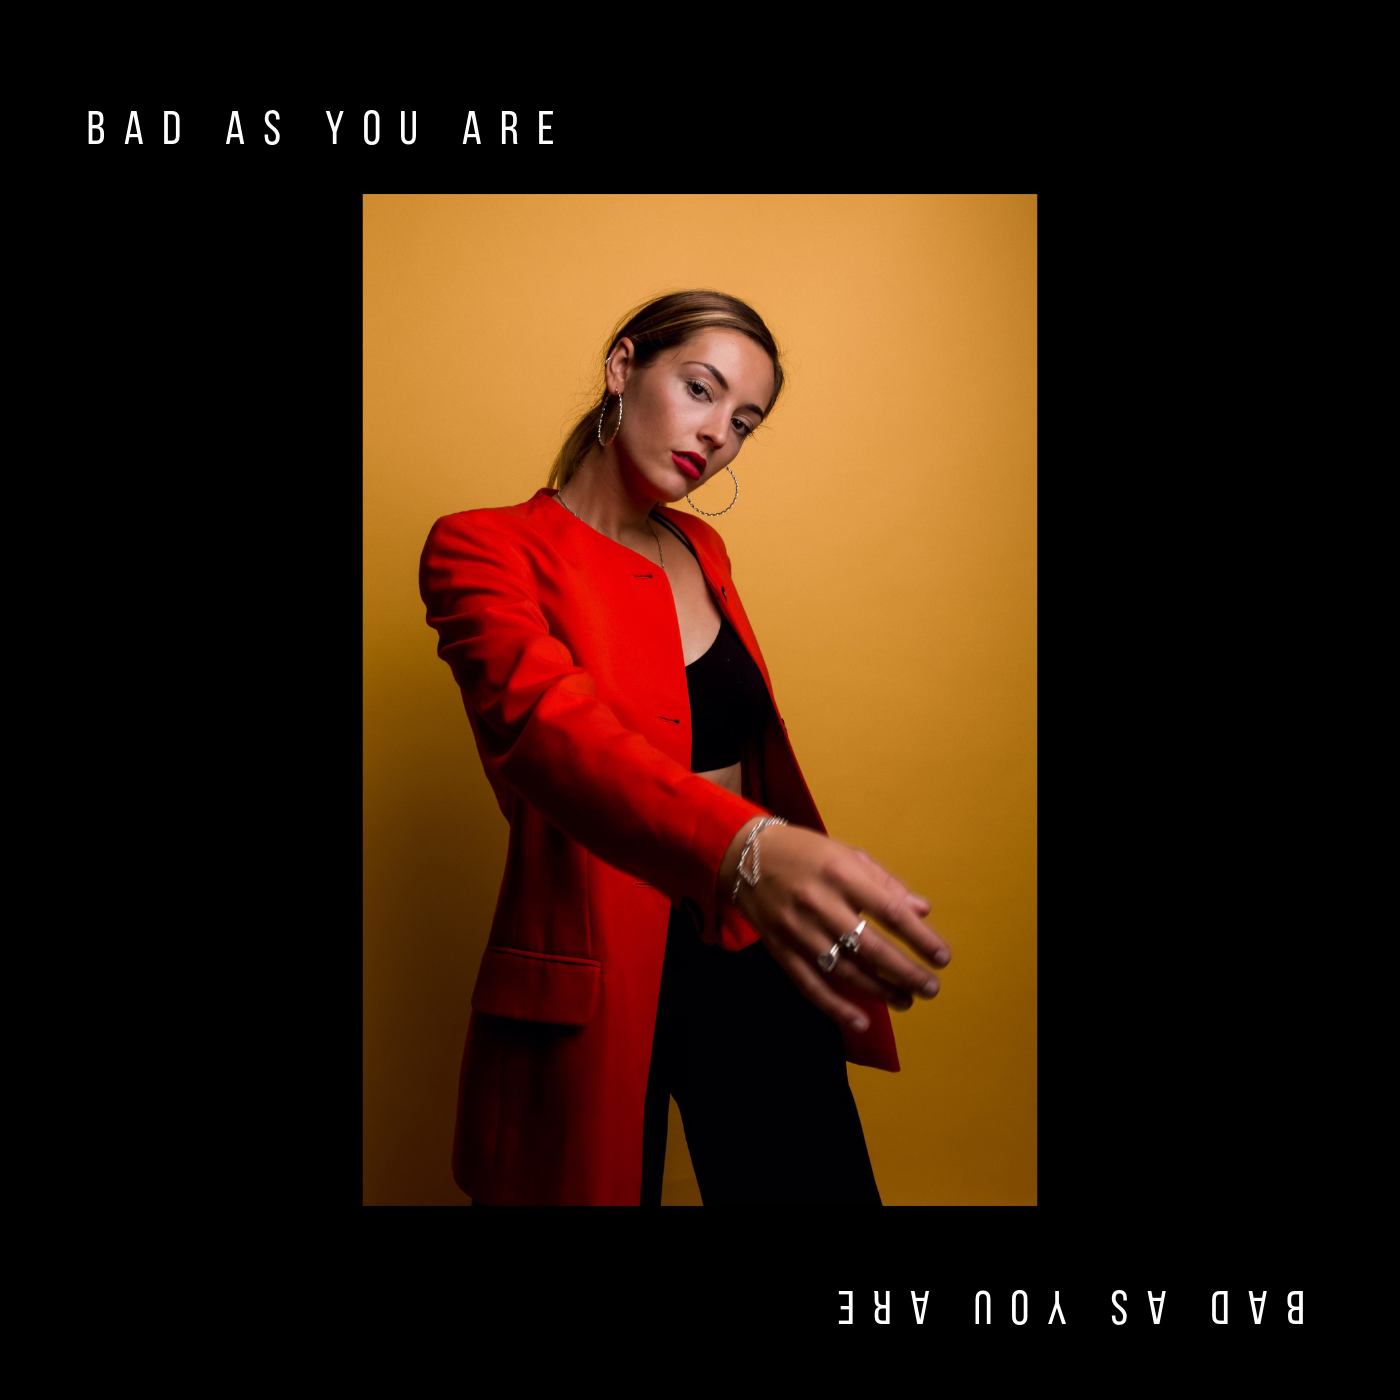 BAD AS YOU - OUT 31.05.19 (Click on photo to listen)